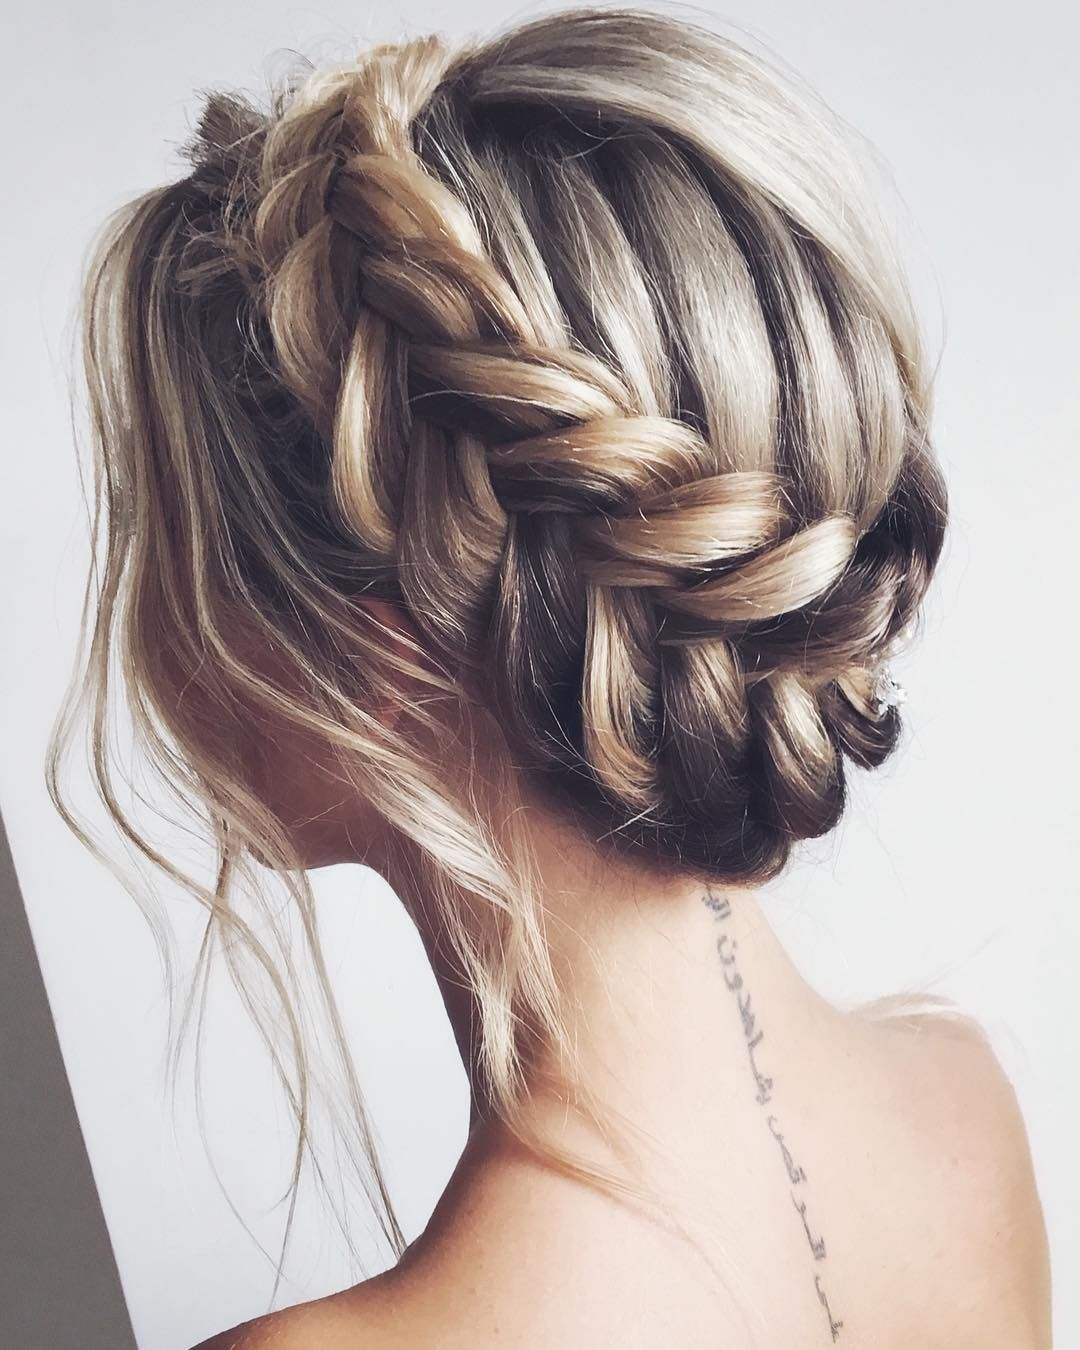 "Long Wedding hairstyles and updos from lenabogucharskaya <a class=""pintag"" href=""/explore/weddings/"" title=""#weddings explore Pinterest"">#weddings</a> <a class=""pintag"" href=""/explore/hairstyles/"" title=""#hairstyles explore Pinterest"">#hairstyles</a> <a class=""pintag"" href=""/explore/weddingideas/"" title=""#weddingideas explore Pinterest"">#weddingideas</a> <a class=""pintag"" href=""/explore/weddinghairstyles/"" title=""#weddinghairstyles explore Pinterest"">#weddinghairstyles</a> <a class=""pintag"" href=""/explore/hair/"" title=""#hair explore Pinterest"">#hair</a> <a class=""pintag"" href=""/explore/dpf/"" title=""#dpf explore Pinterest"">#dpf</a> <a class=""pintag"" href=""/explore/deerpearlflowers/"" title=""#deerpearlflowers explore Pinterest"">#deerpearlflowers</a><p><a href=""http://www.homeinteriordesign.org/2018/02/short-guide-to-interior-decoration.html"">Short guide to interior decoration</a></p>"